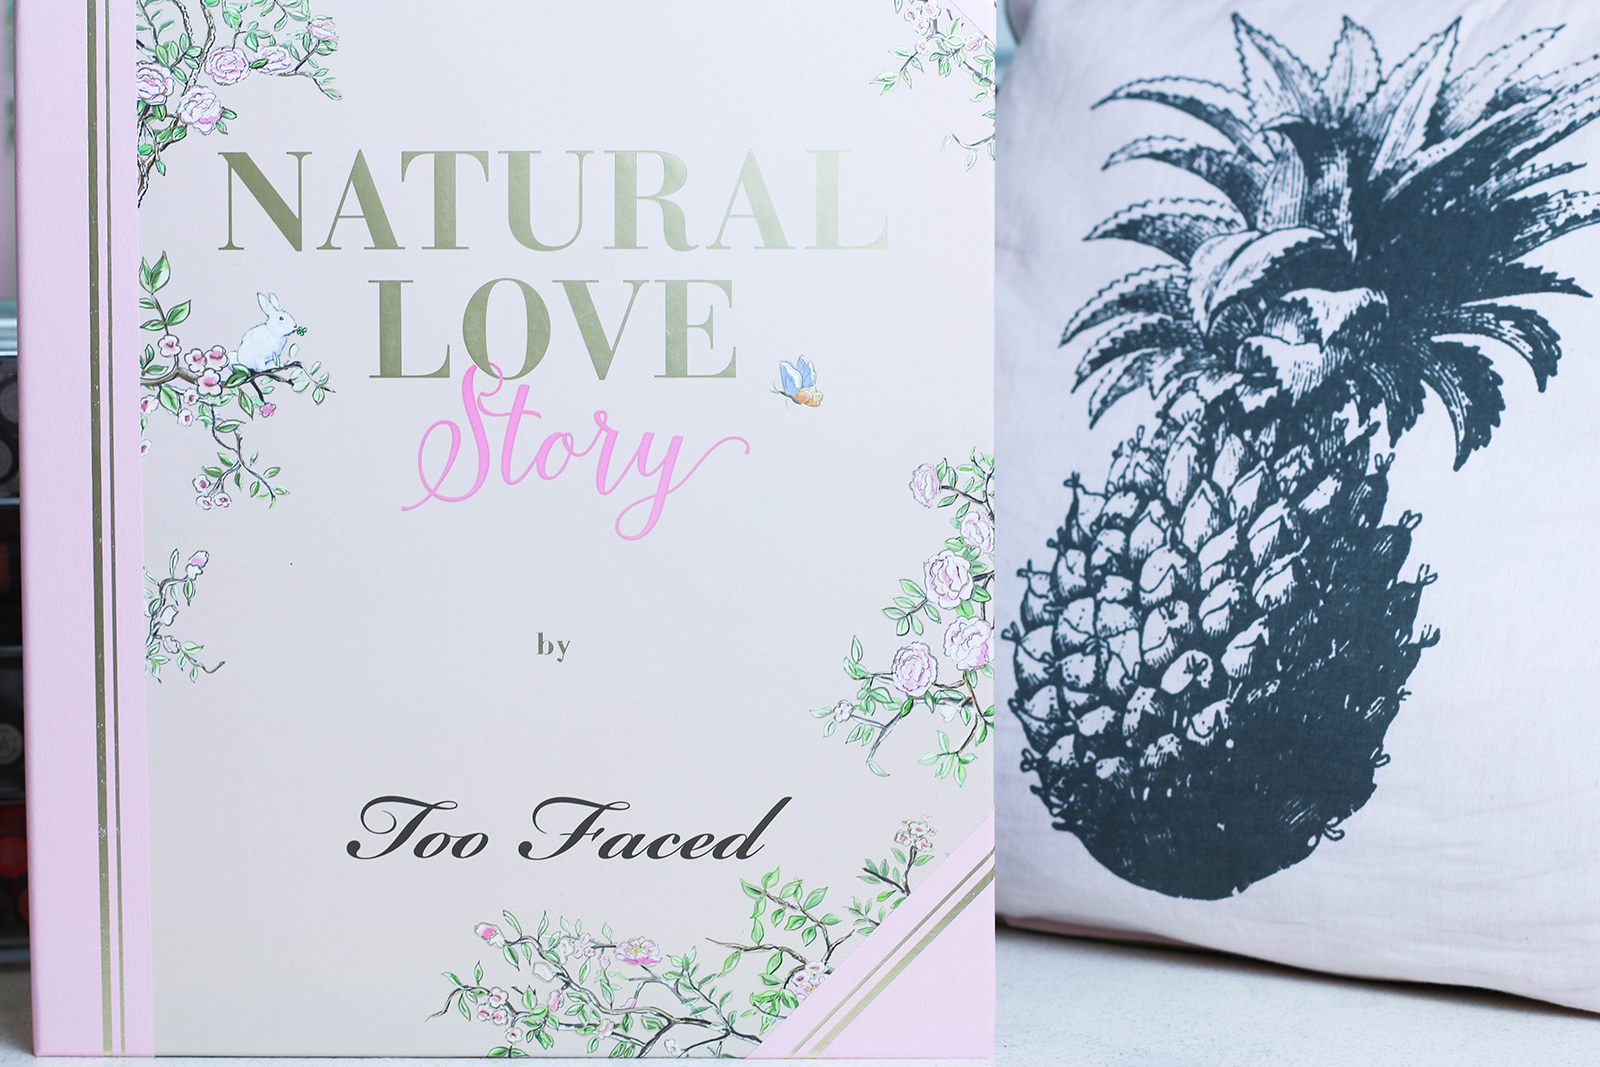 Too Faced Natural Love_14